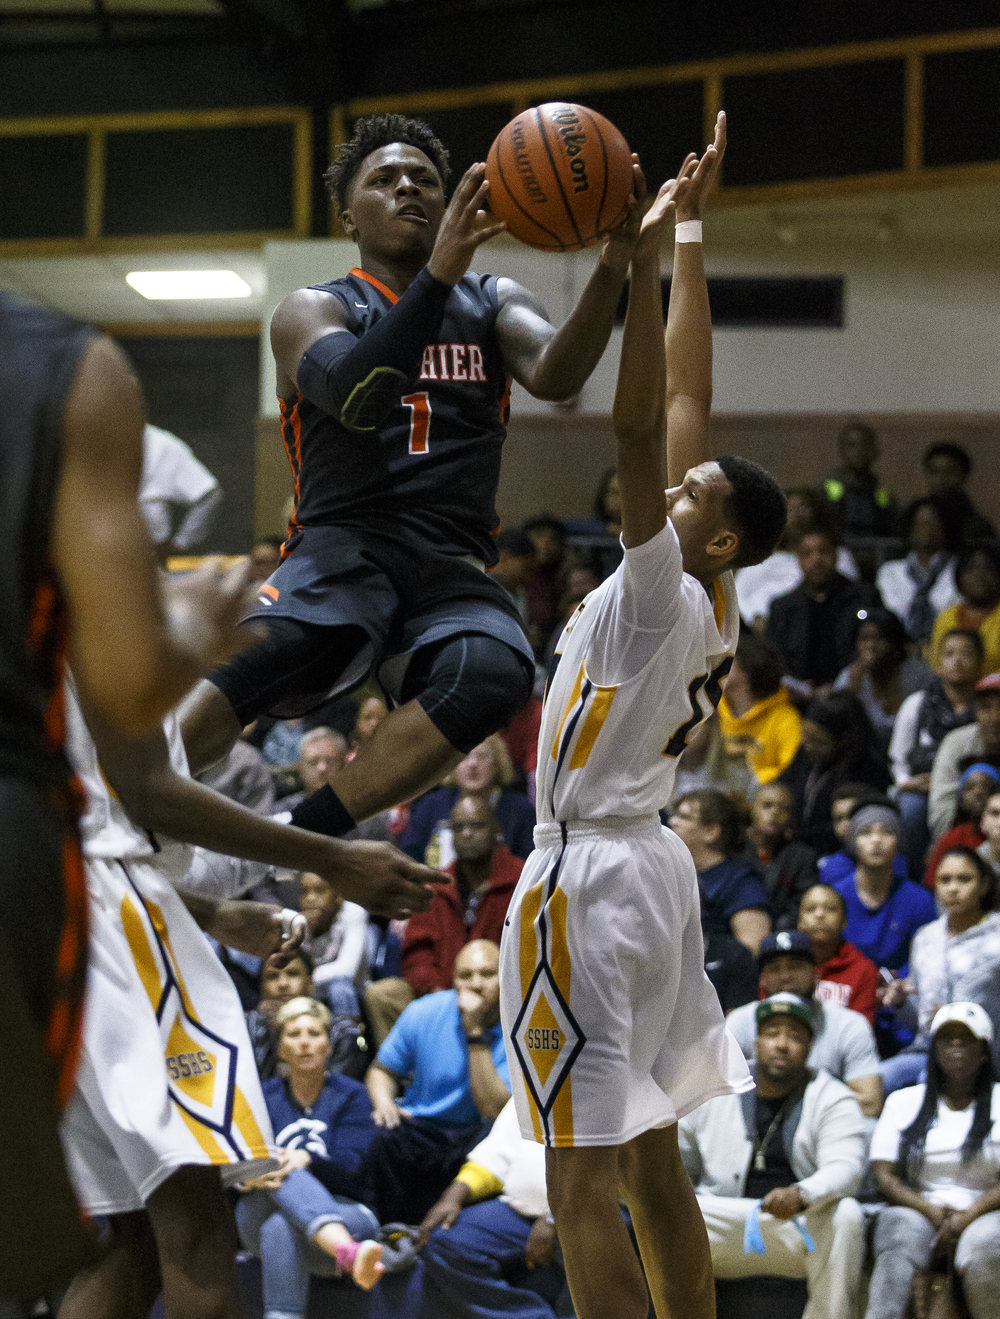 Lanphier's Yaakema Rose (1) goes up to the basket against Southeast's Isaiah Walton (10) in the second half at Herb Scheffler Gymnasium, Friday, Feb. 26, 2016, in Springfield, Ill. Justin L. Fowler/The State Journal-Register